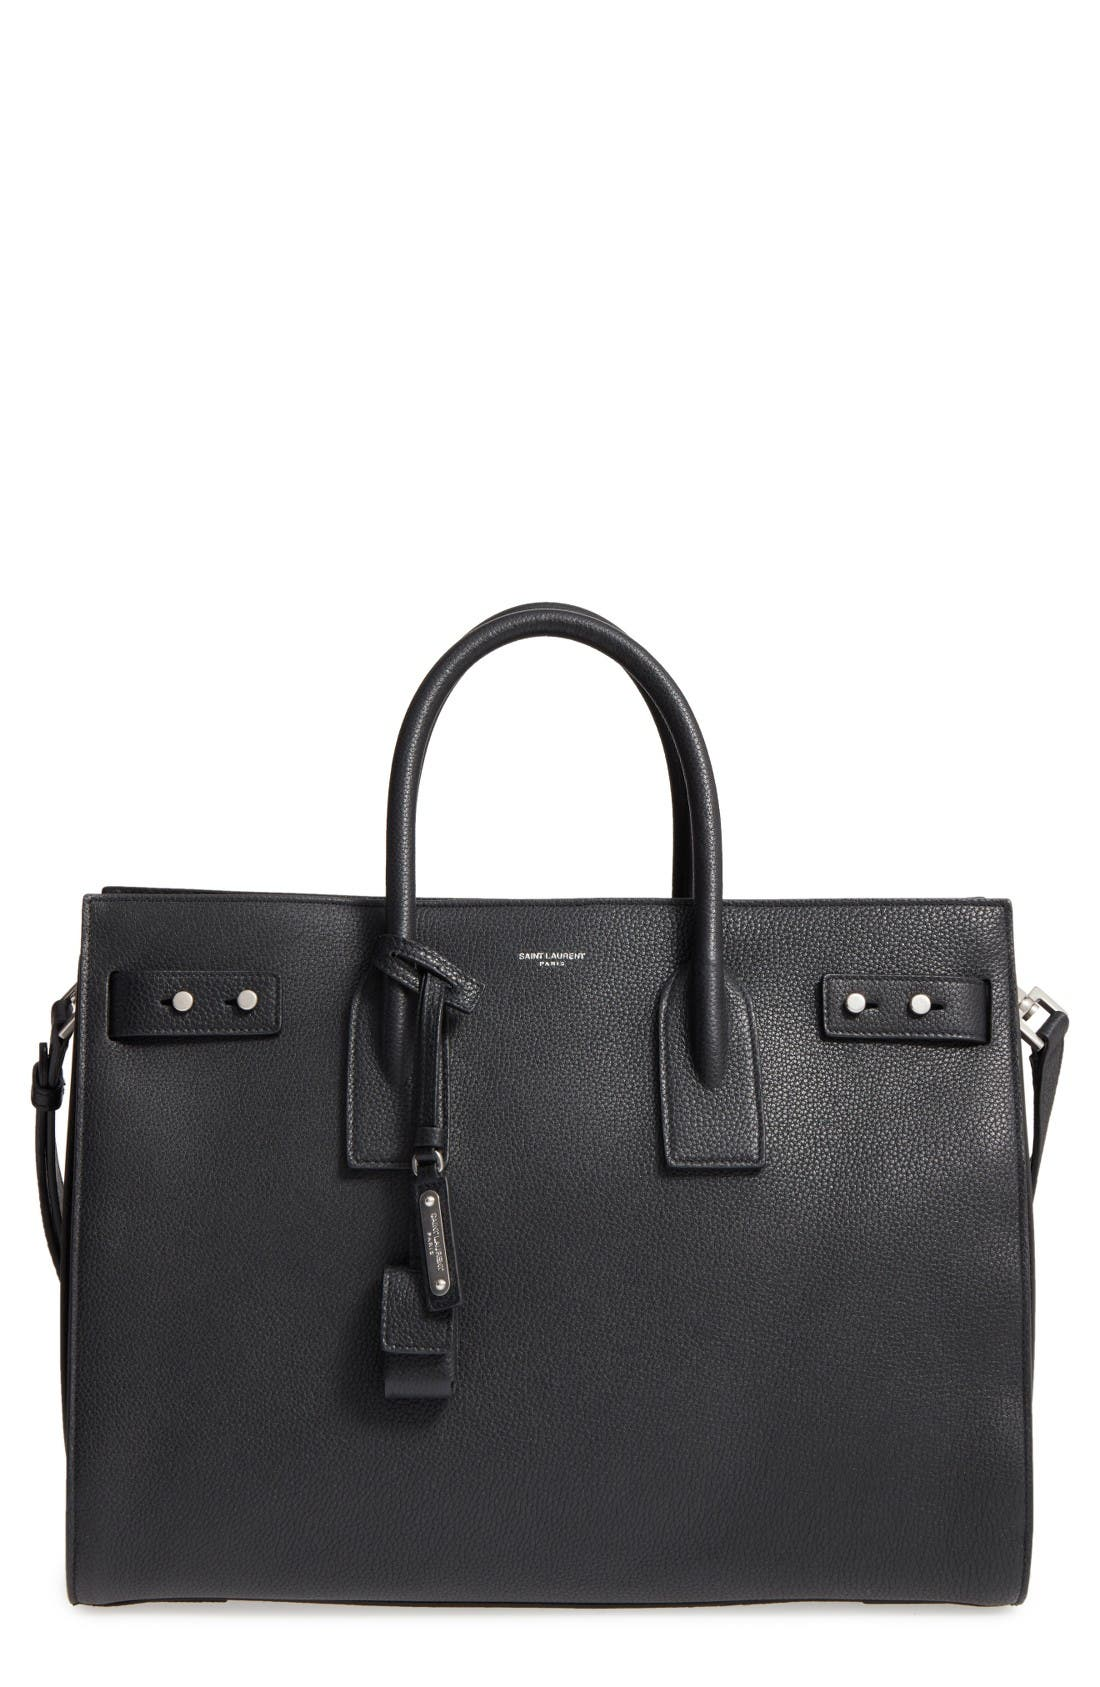 Main Image - Saint Laurent Medium Sac de Jour Grained Leather Tote